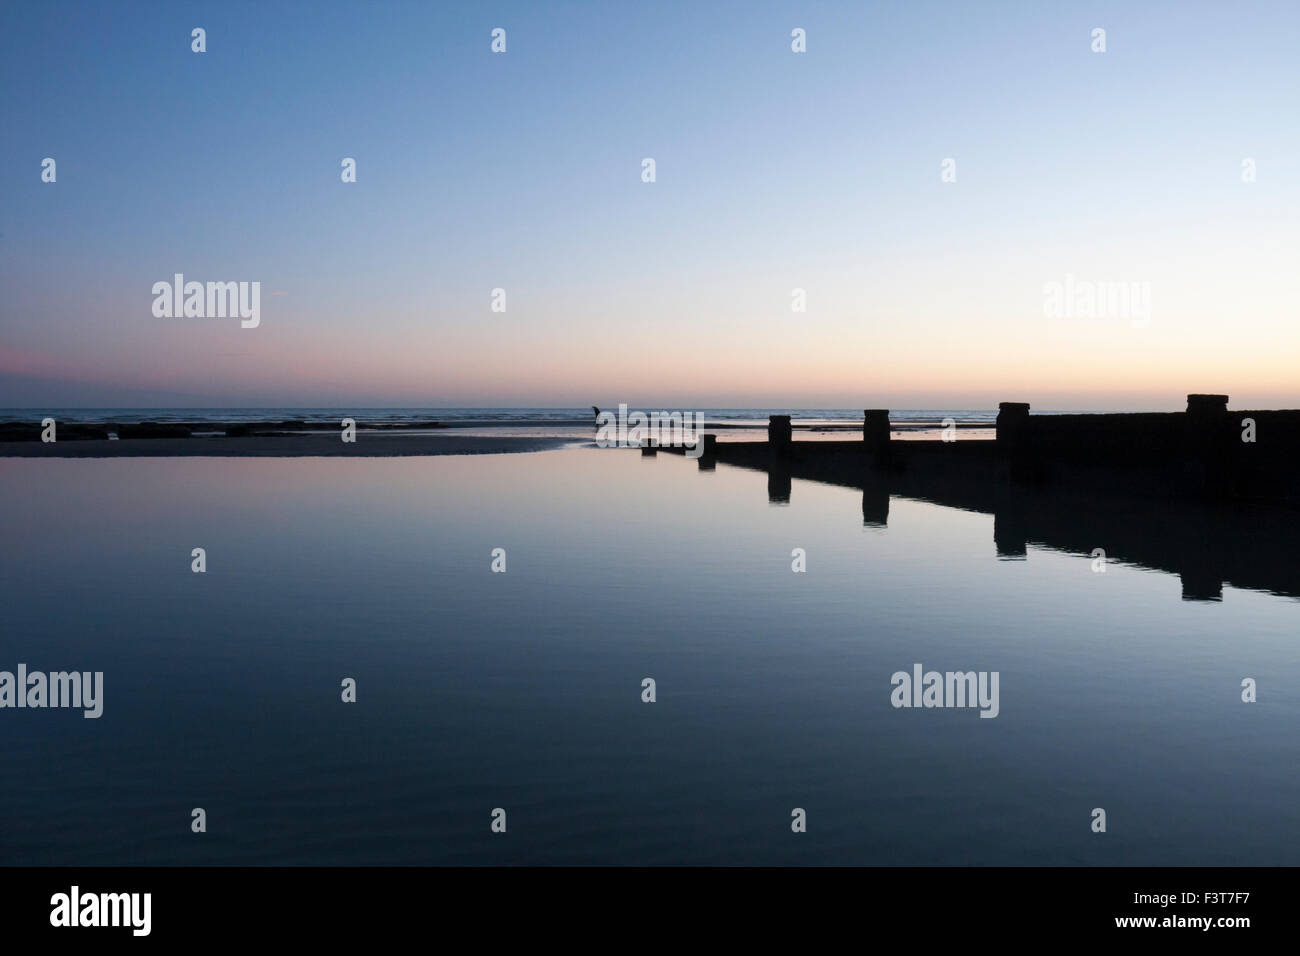 Reflections at dusk and lone figure on a tranquil beach, Bexhill on Sea, East Sussex, England, UK - Stock Image